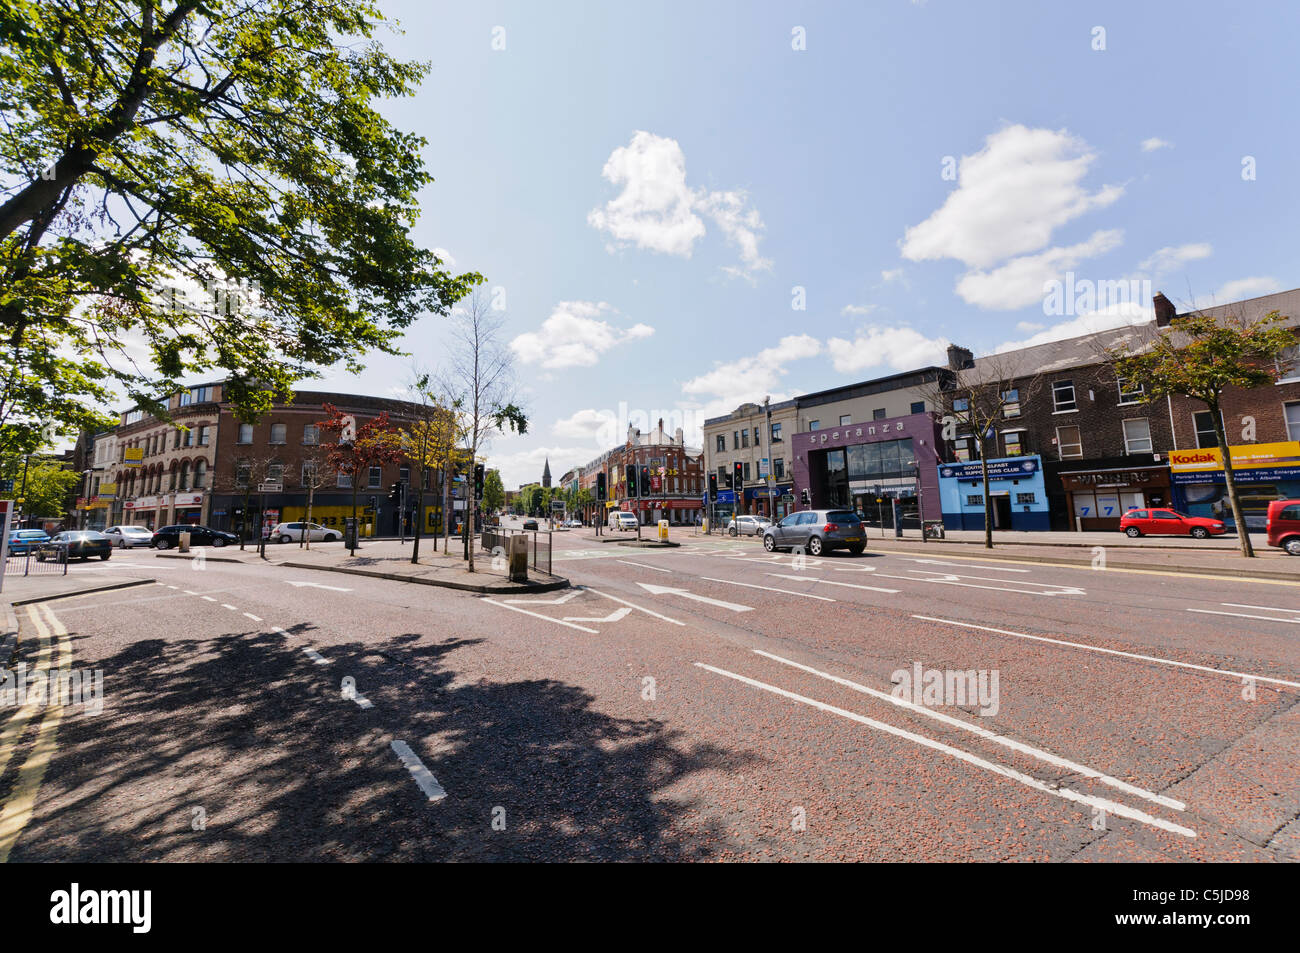 Shaftesbury Square, Belfast: the centre of Belfast's entertainment area known as 'The Golden Mile' - Stock Image